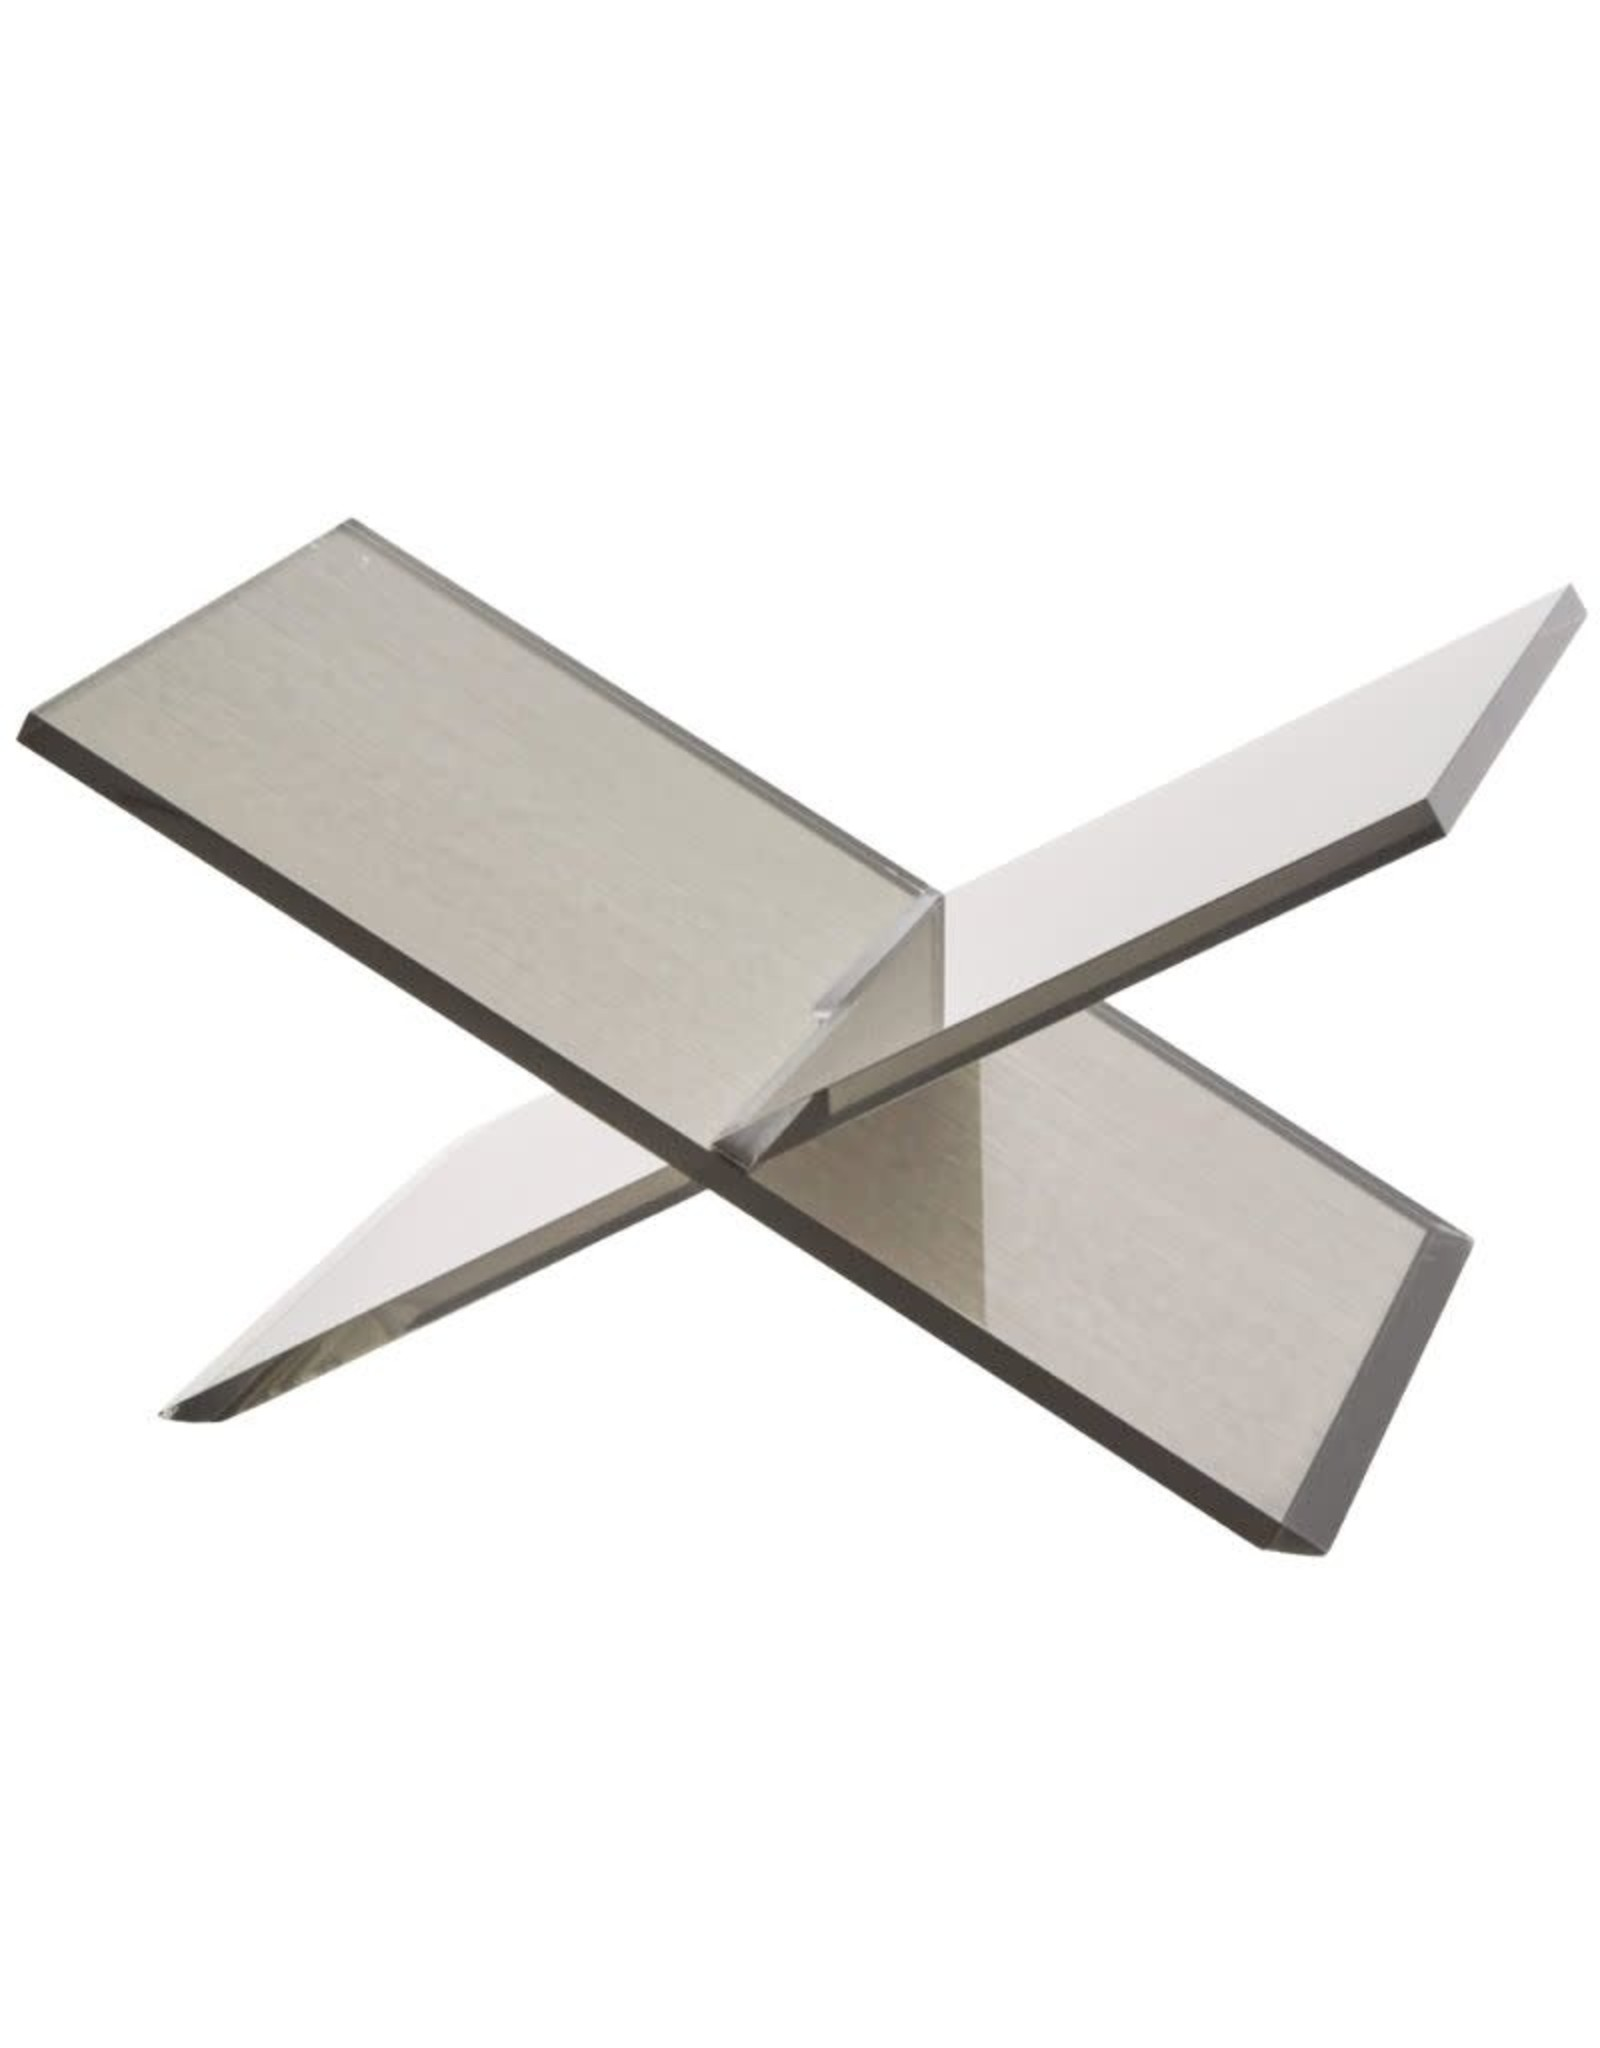 Acrylic Book Stand - Silver